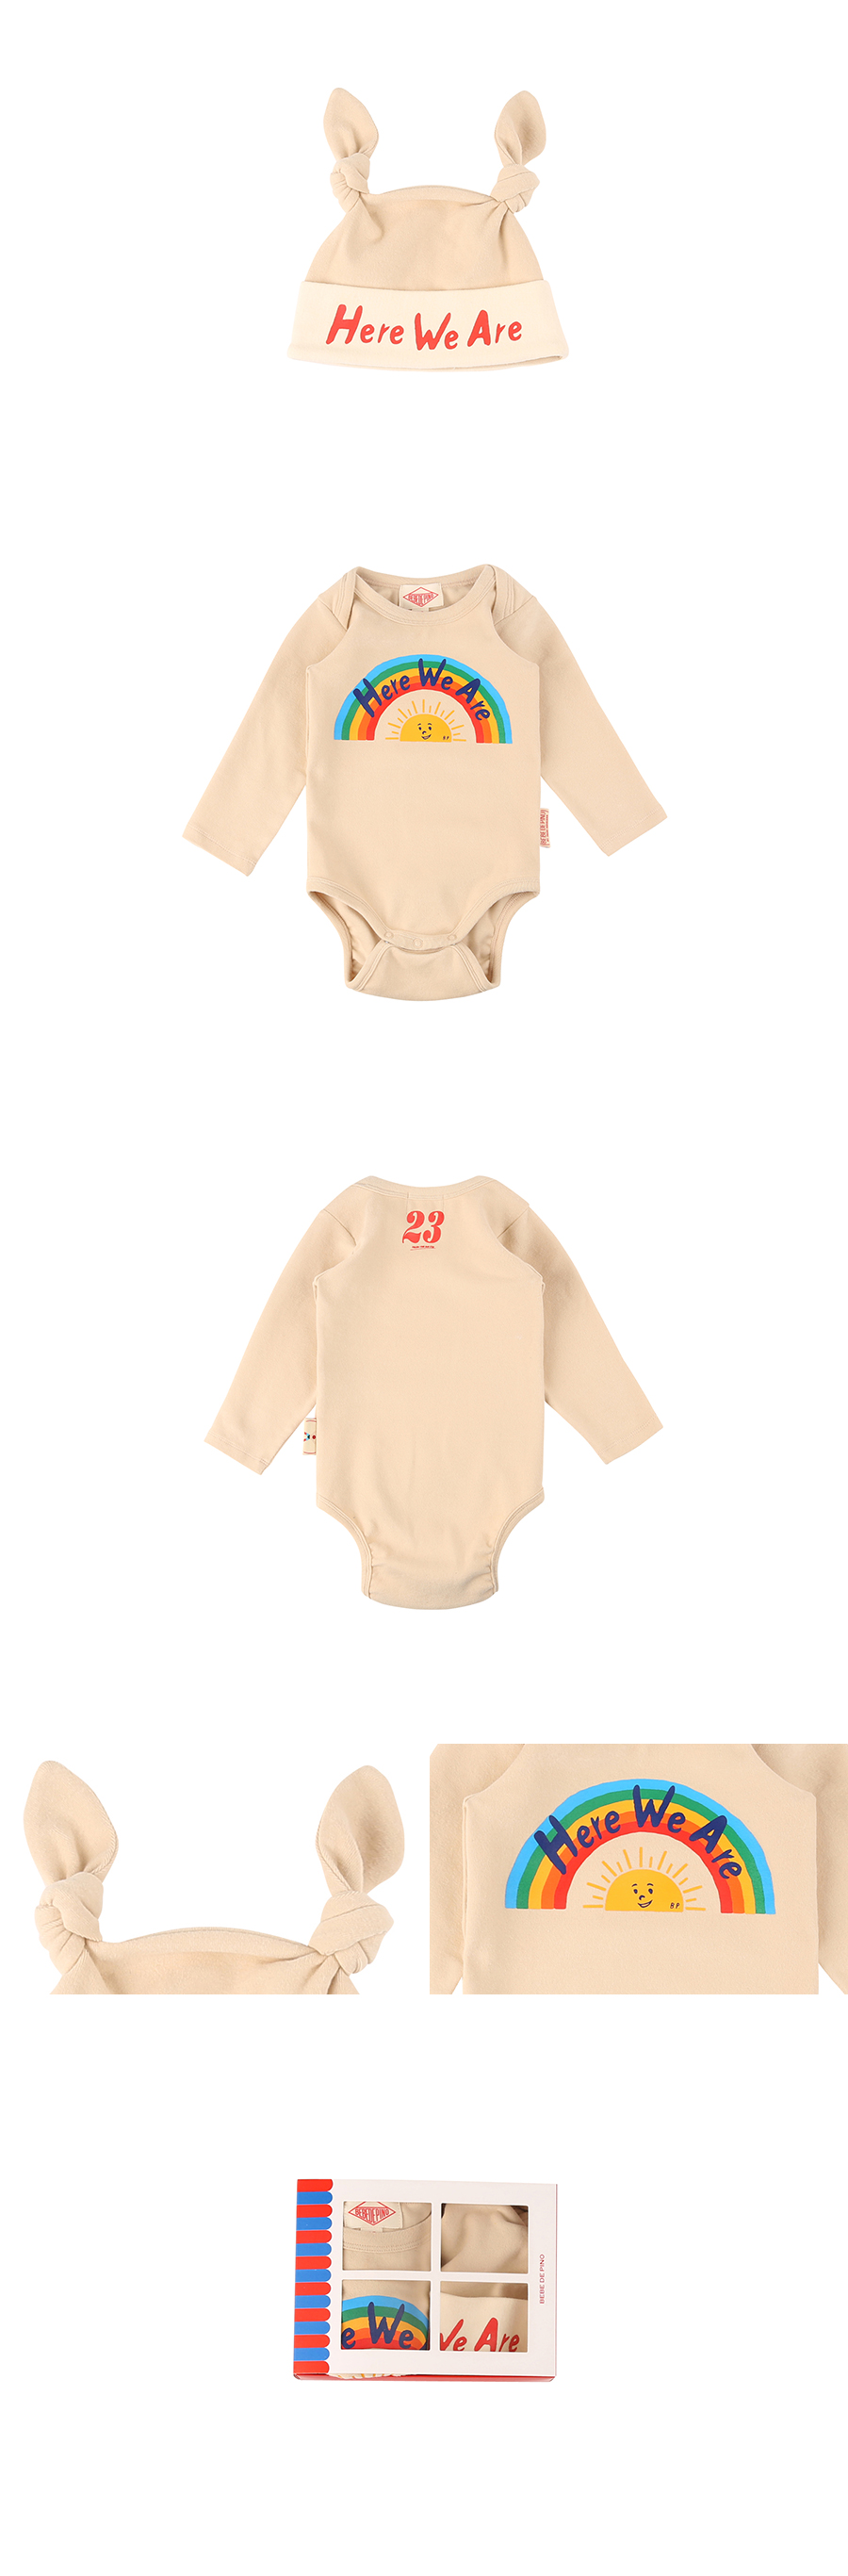 Rainbow baby bodysuit set 상세 이미지